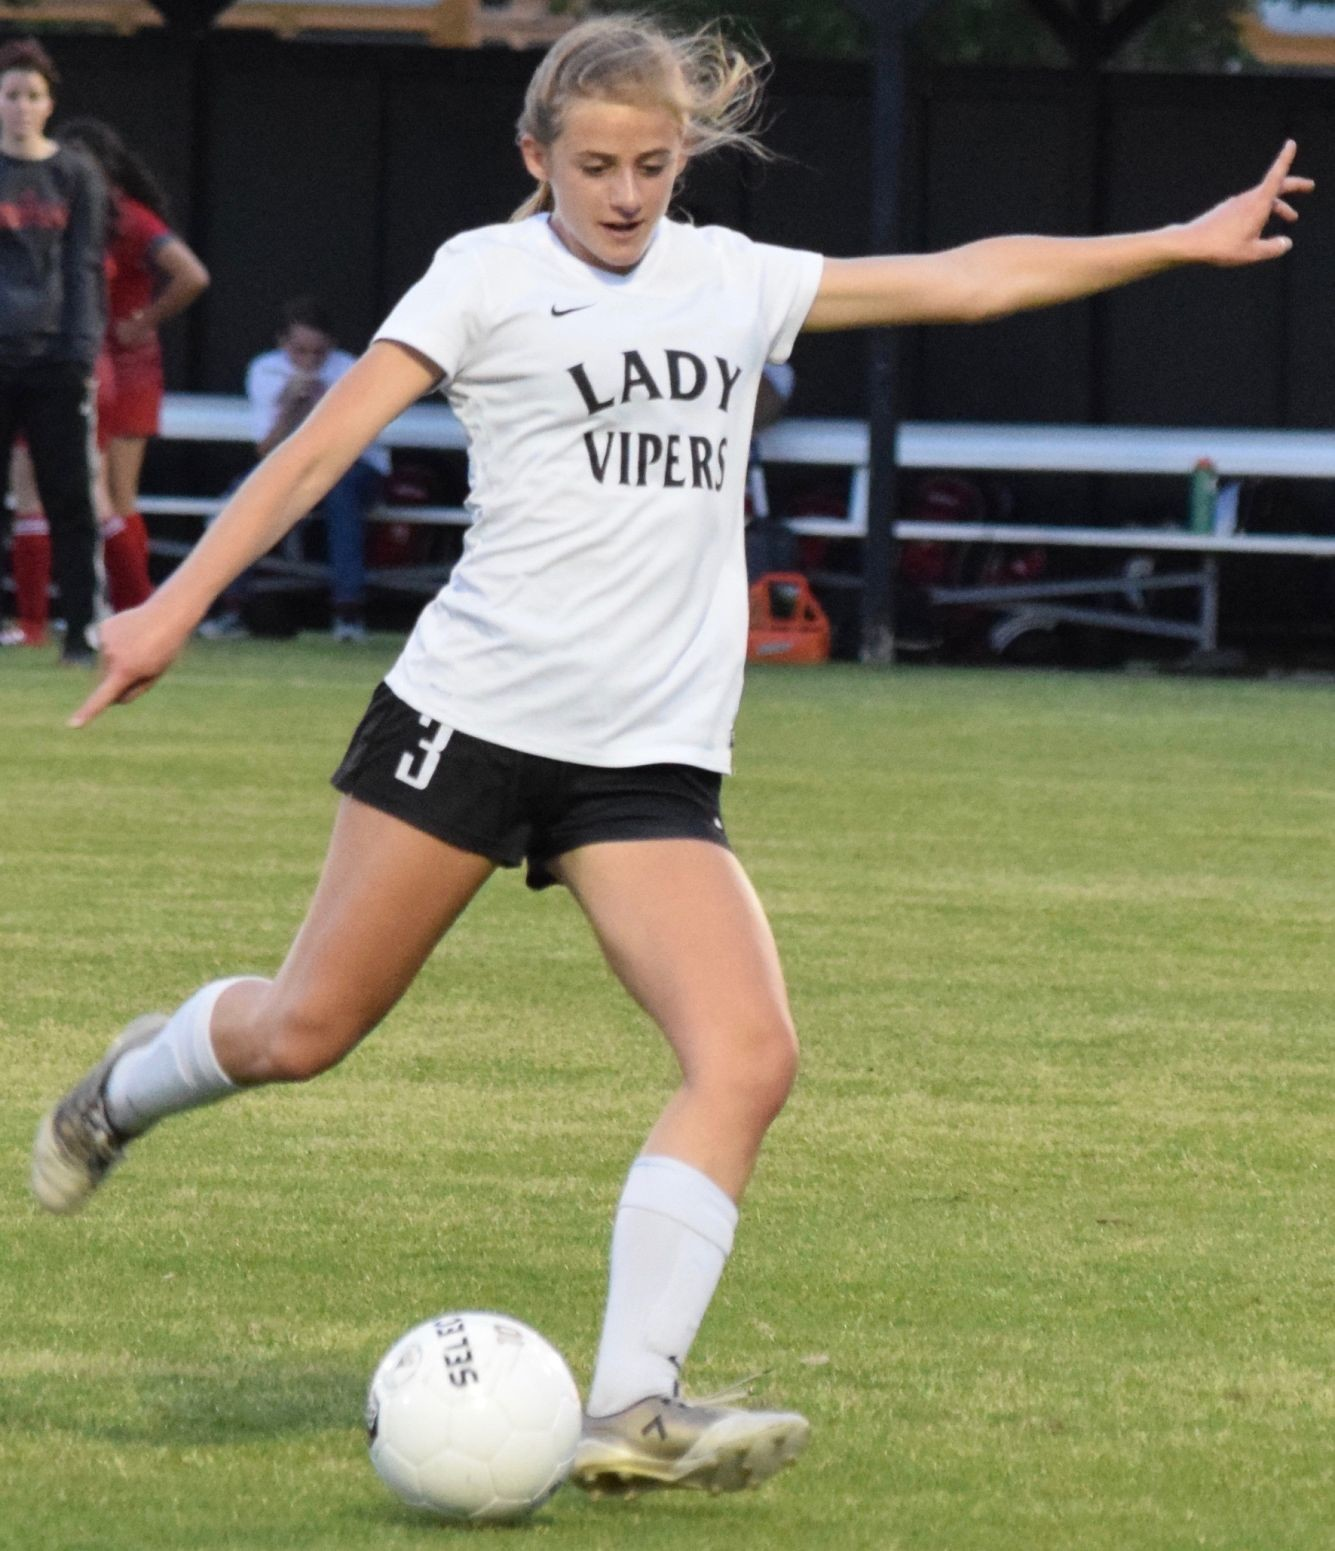 Grace Andres and Vandegrift will face off with Schertz Clemens at Rattler Stadium in San Marcos in the second round of the playoffs Thursday at 7 p.m.